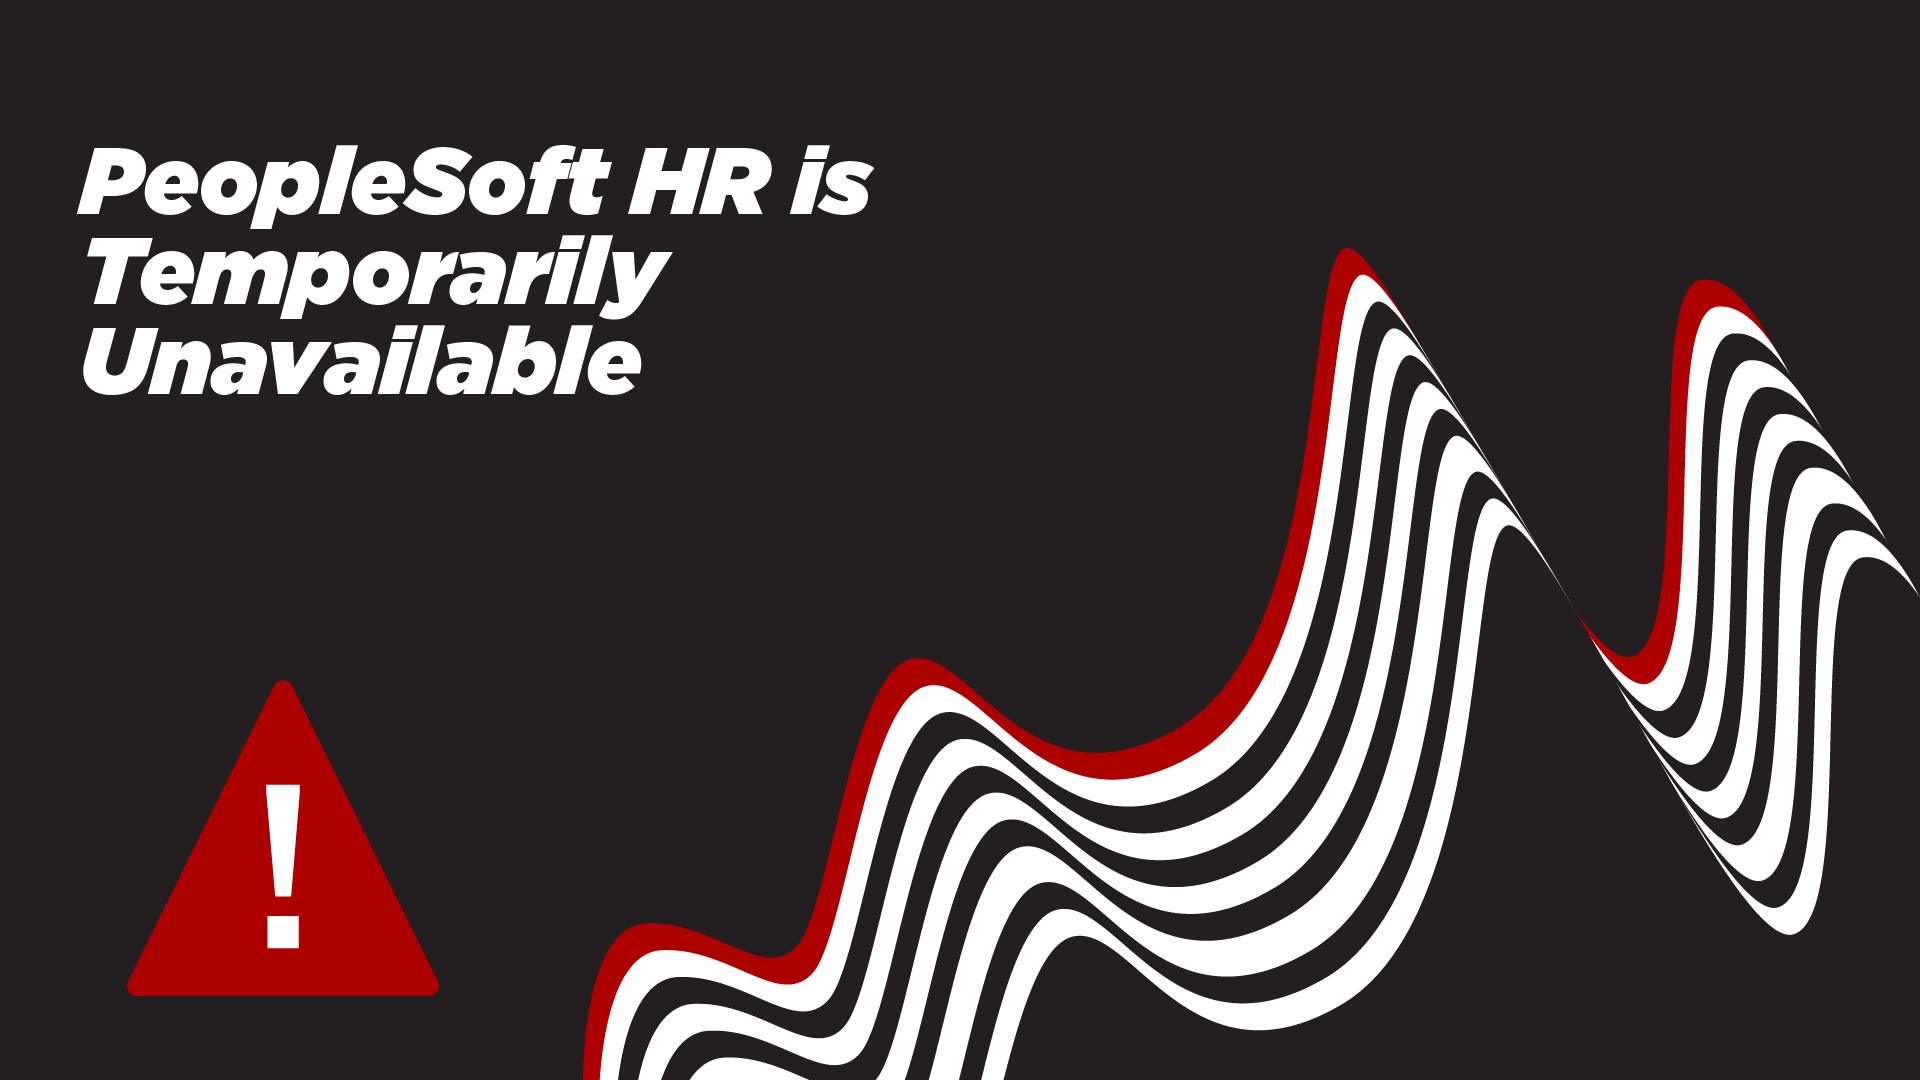 Human Resources is Temporarily Unavailable